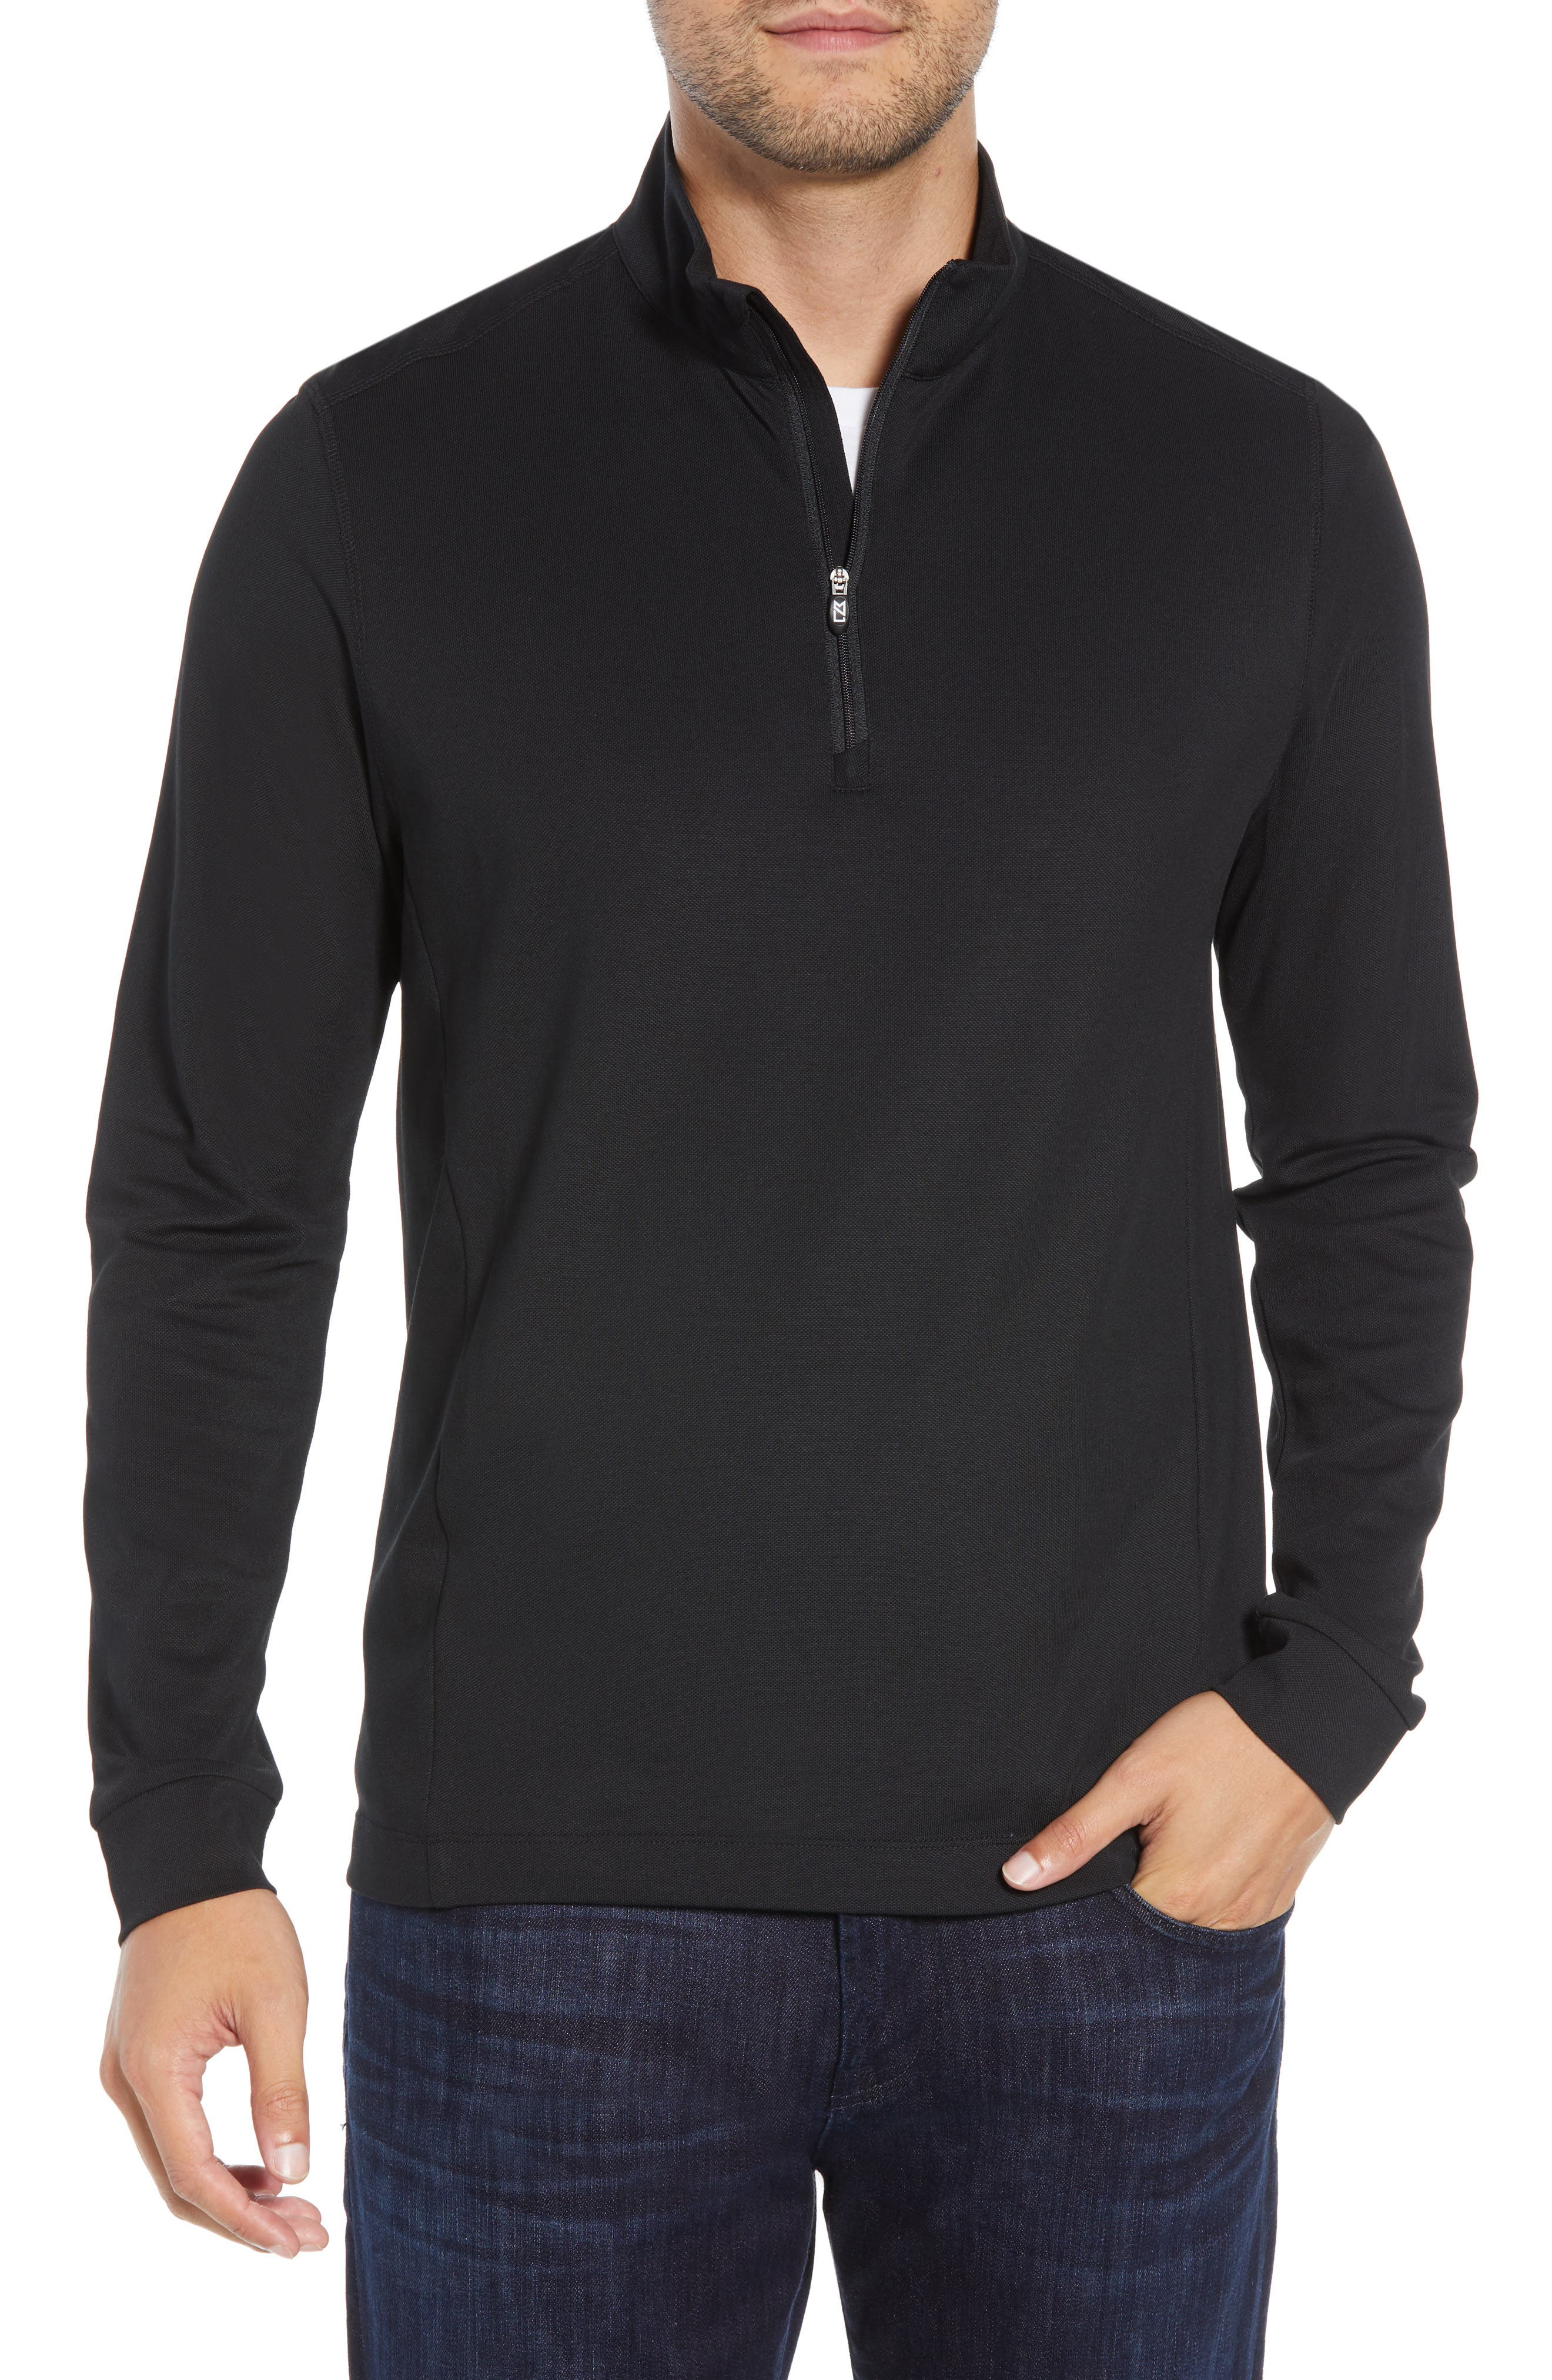 Whether it\\\'s sunny or cool outside, this pullover gives you the advantage to focus on your game with long sleeves and stretchy DryTec fabric with UPF 35+. Style Name: Cutter & Buck Advantage Regular Fit Drytec Mock Neck Pullover. Style Number: 5628337. Available in stores.